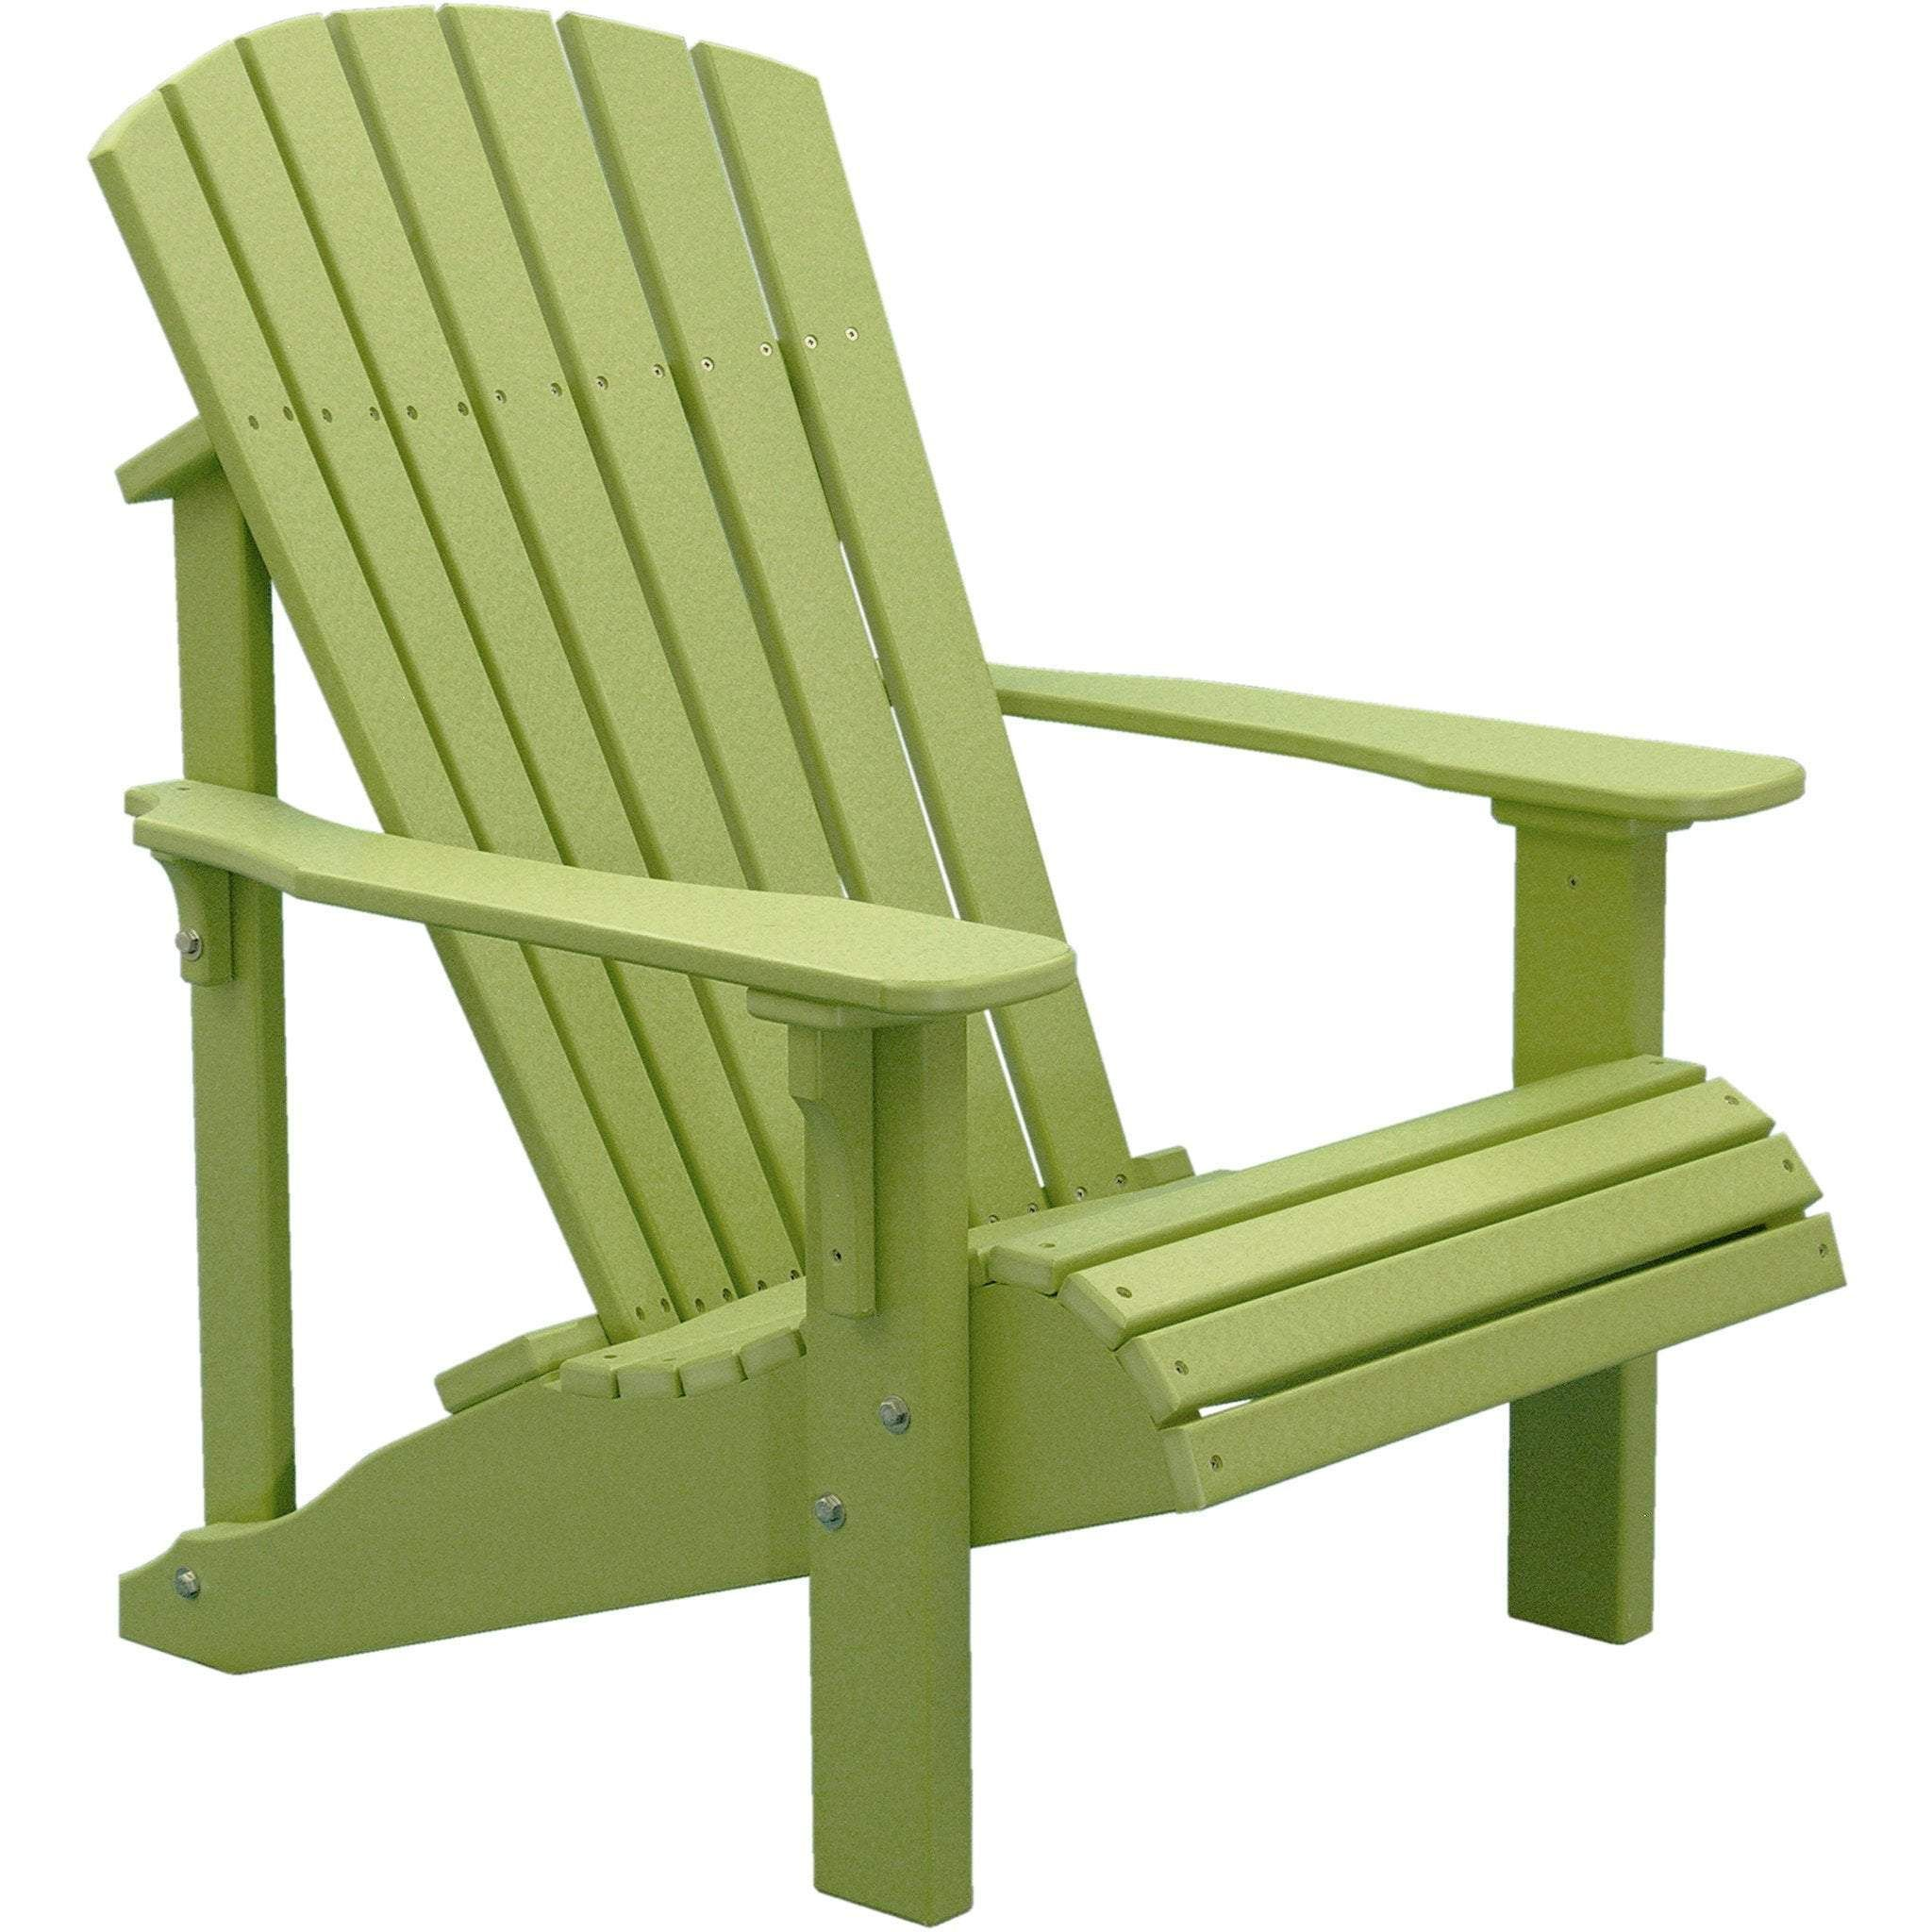 Luxcraft Deluxe Recycled Plastic Adirondack Chair Plastic